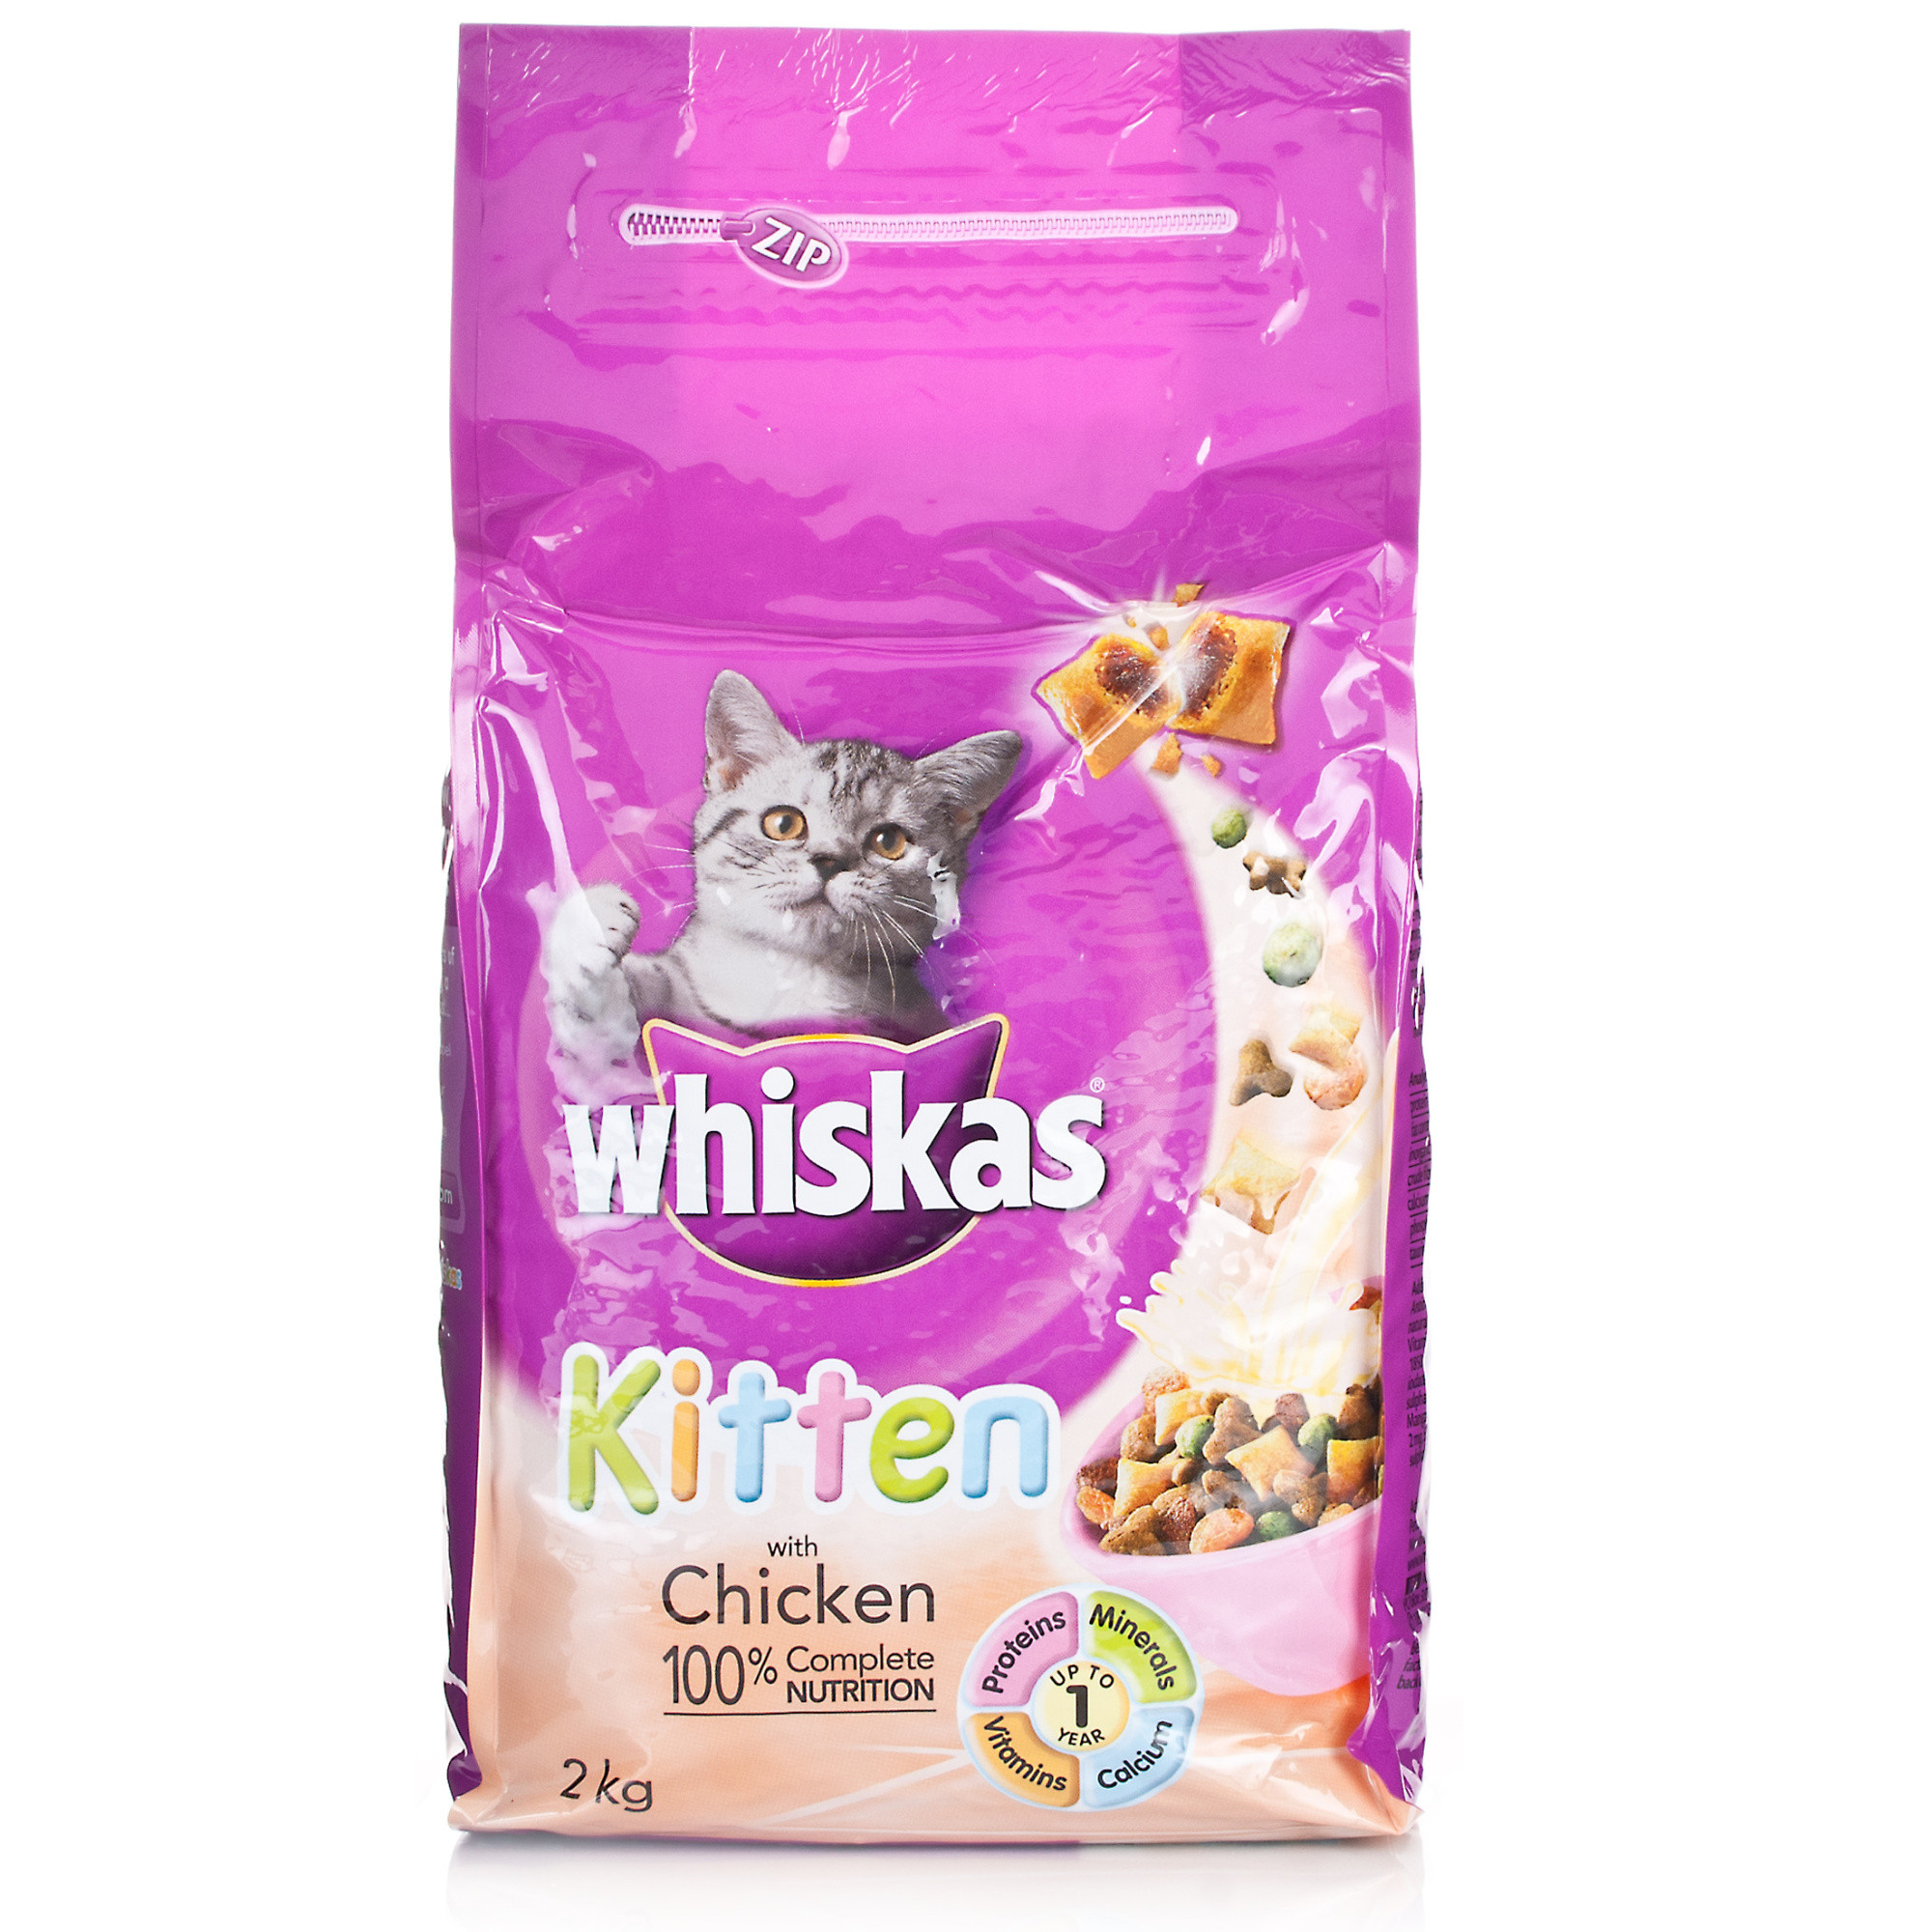 Whiskas Complete Kitten Chicken